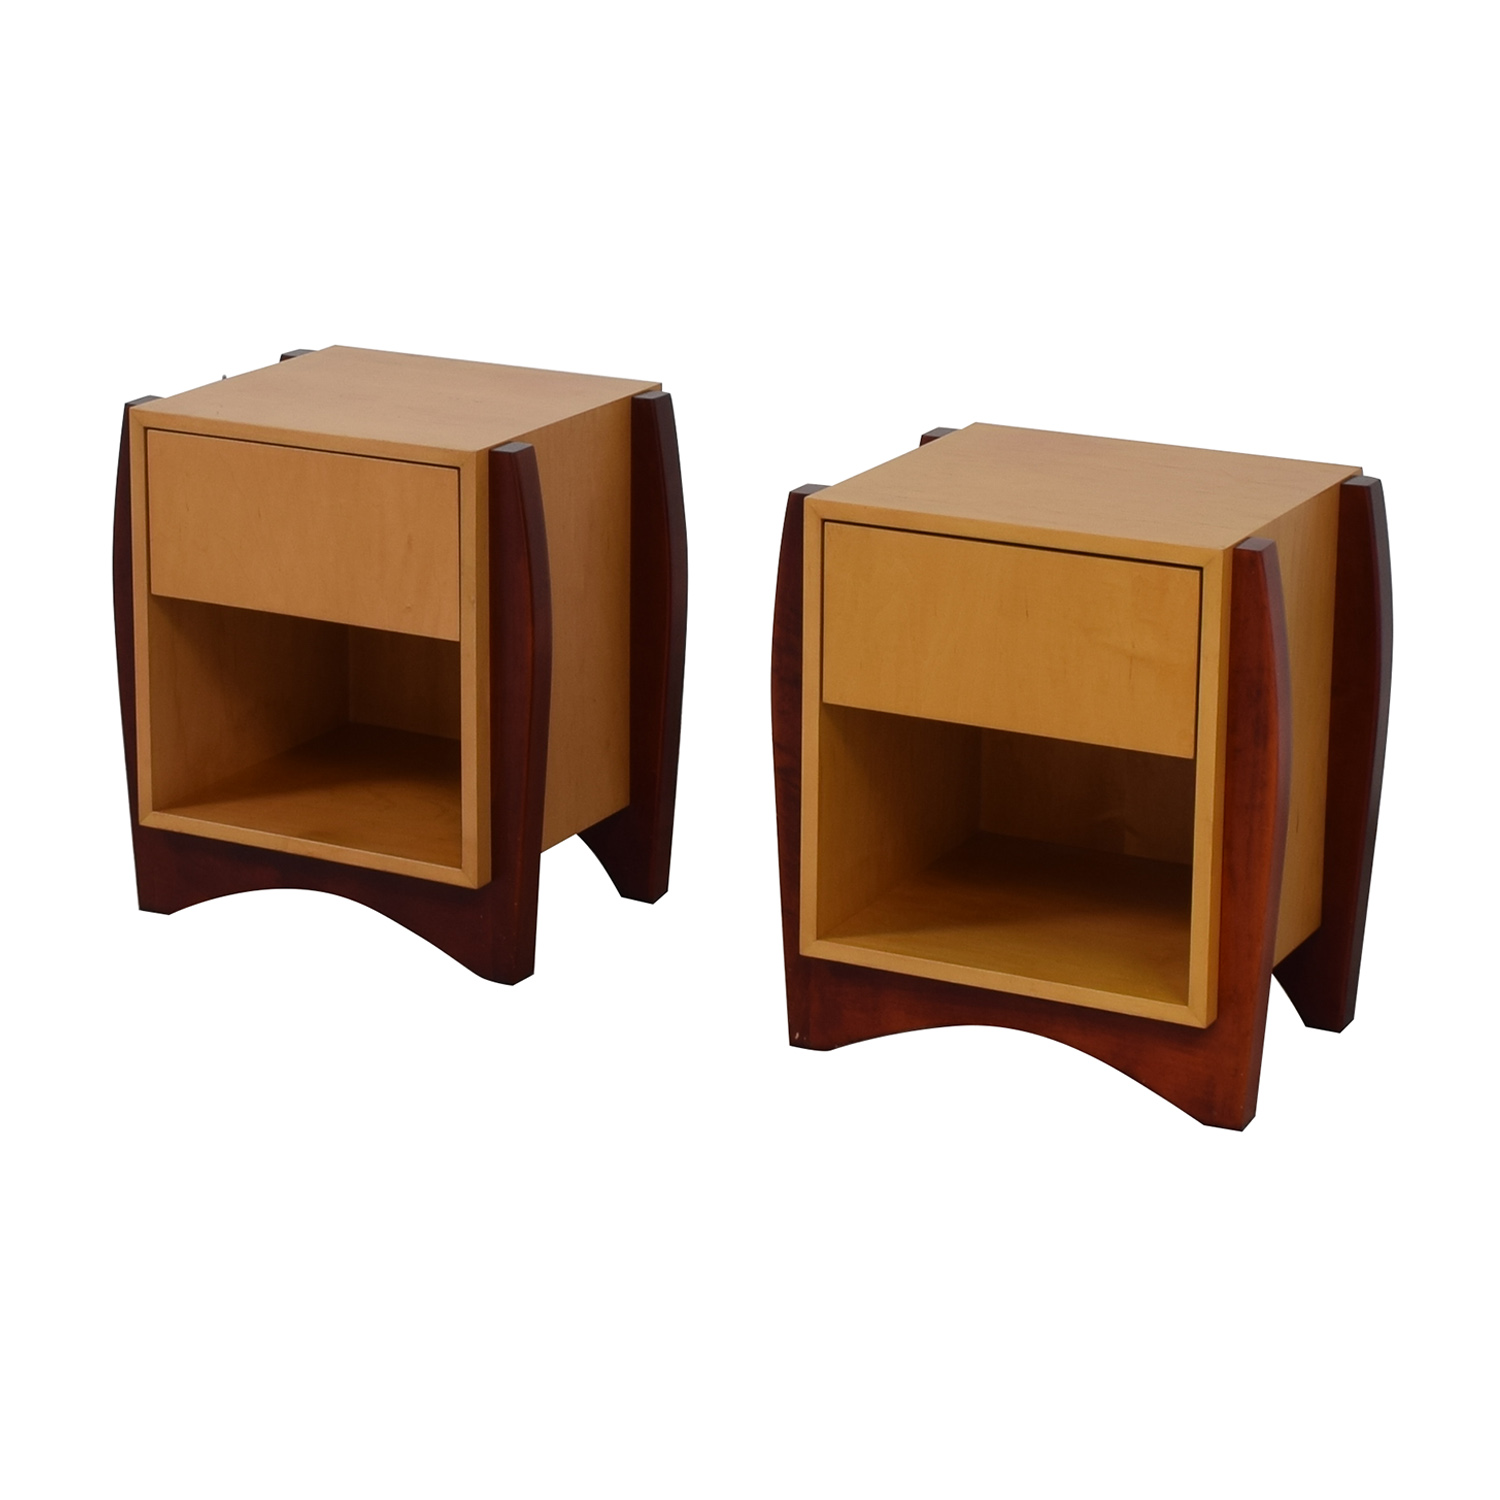 Dialogica Dialogica Nightstands used